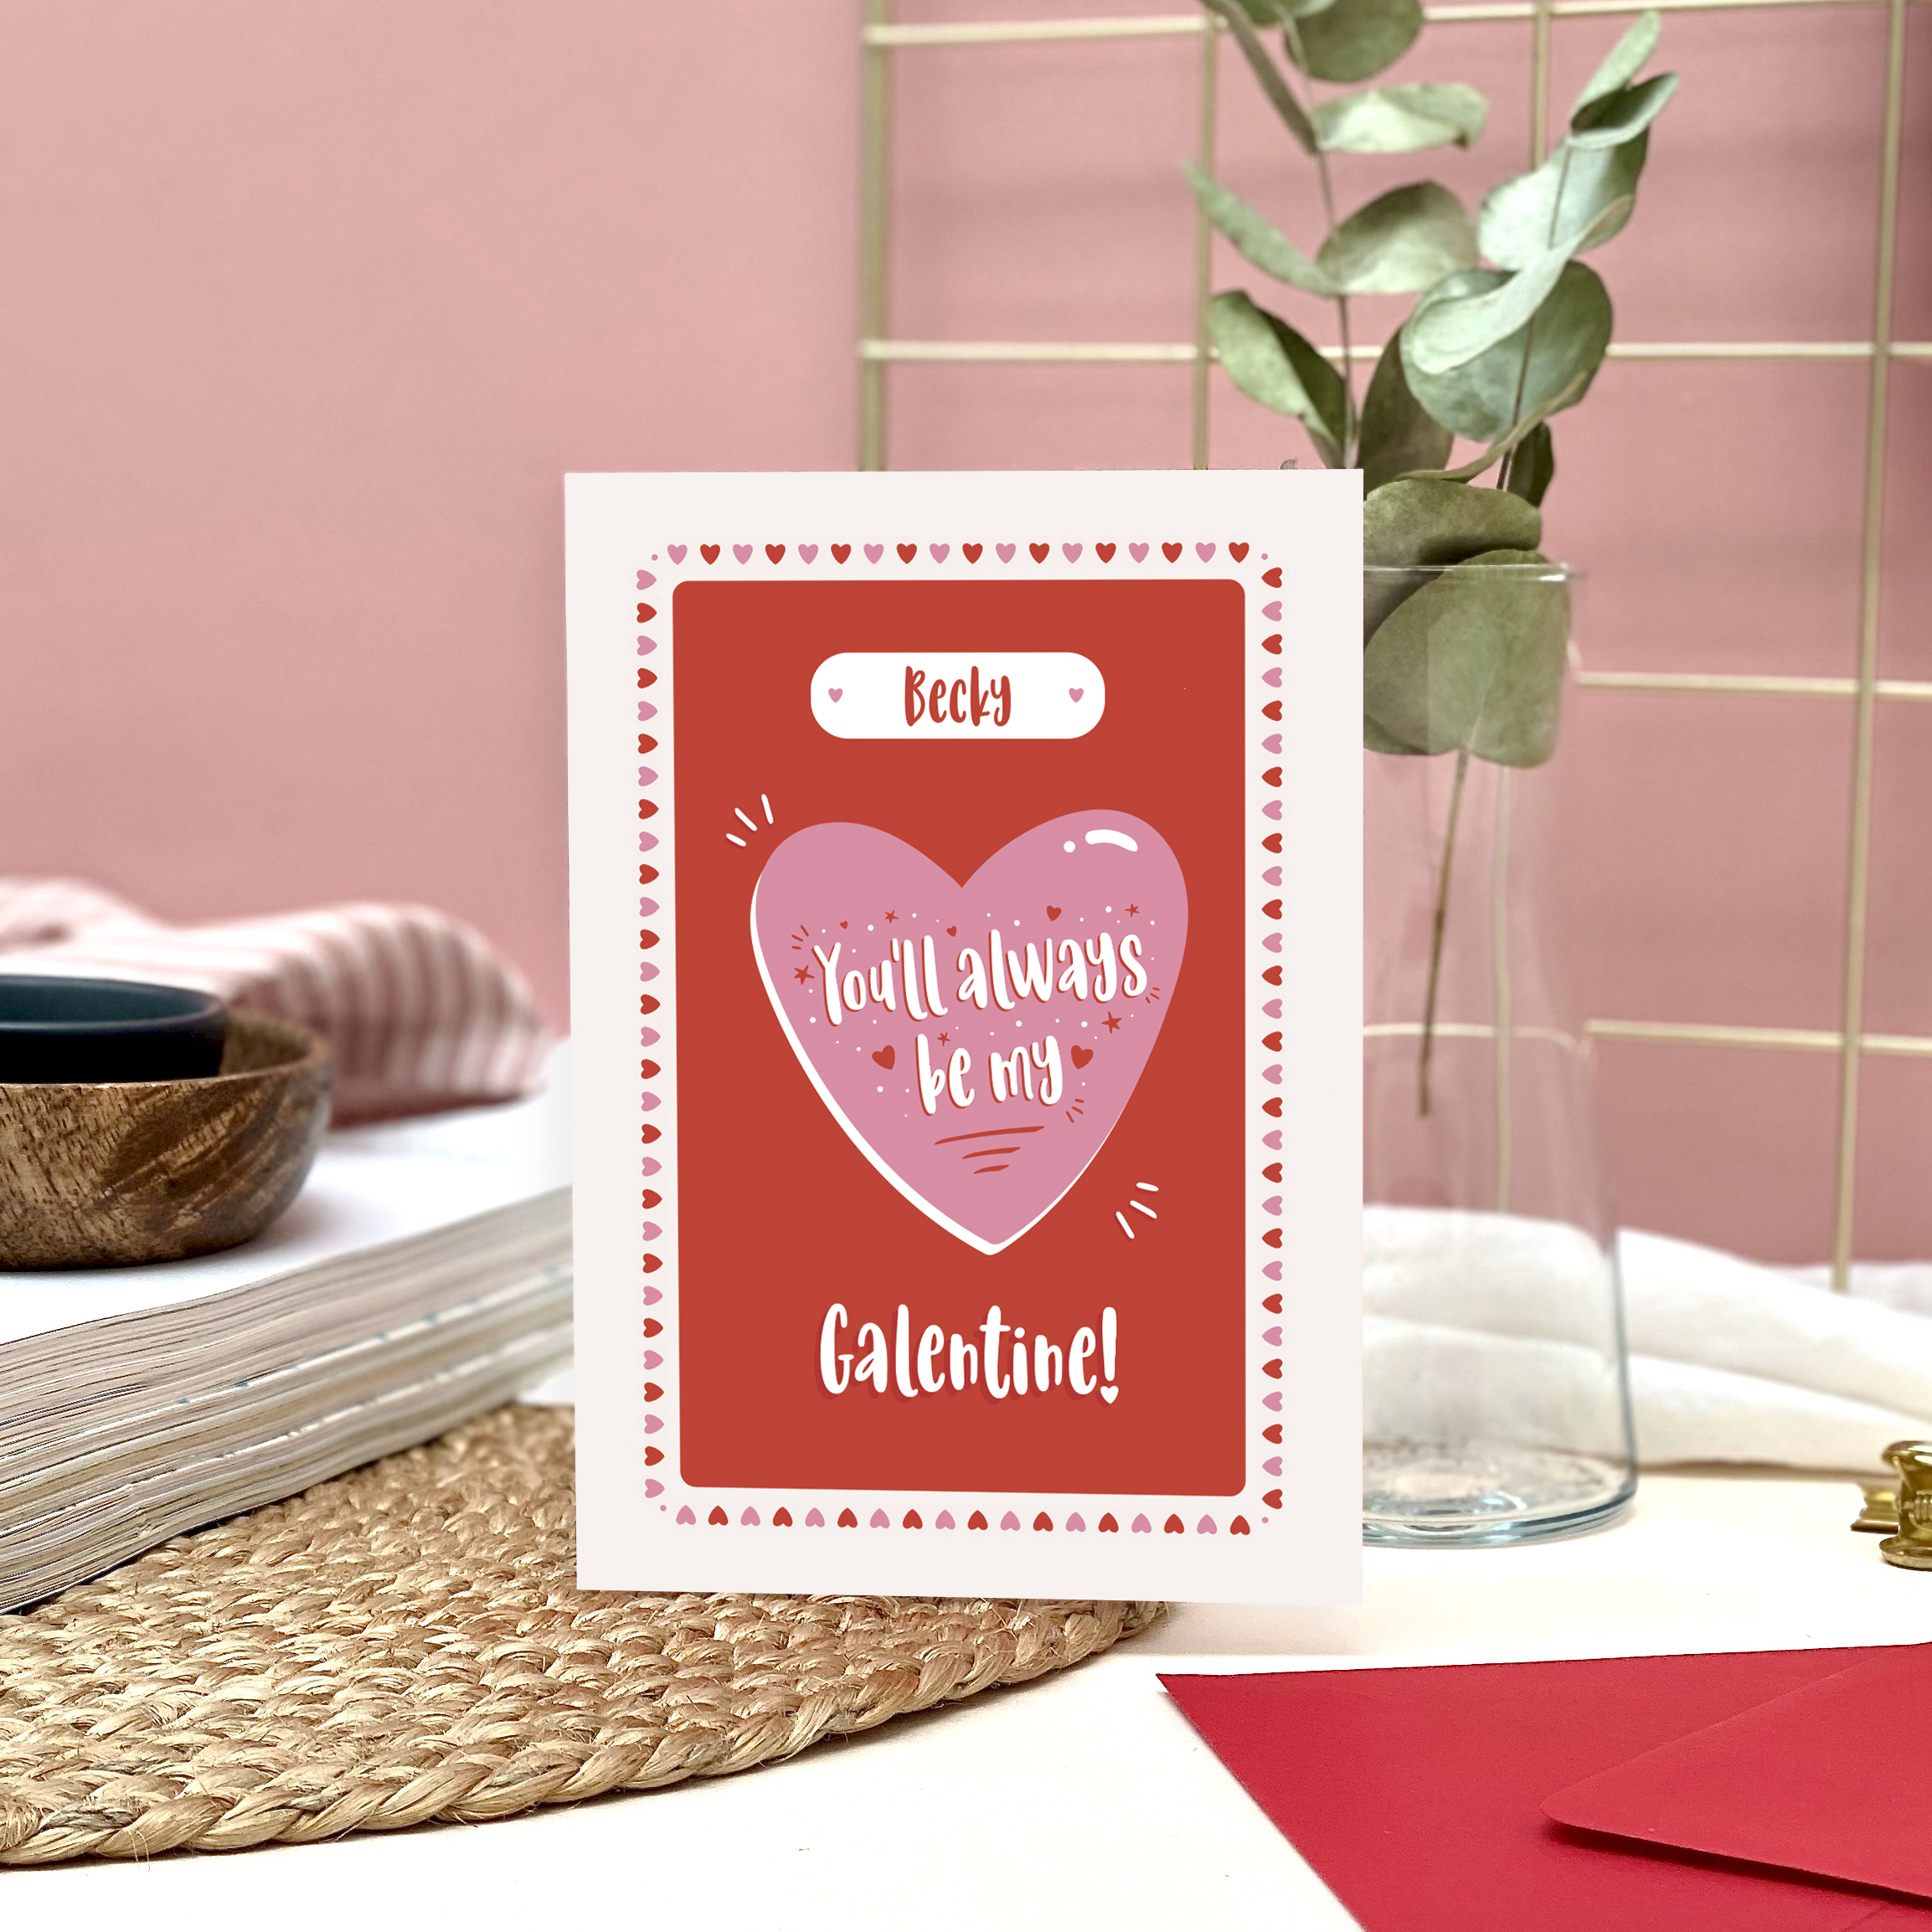 Personalised Galentine's Day Card - Designed by Rodo Creative